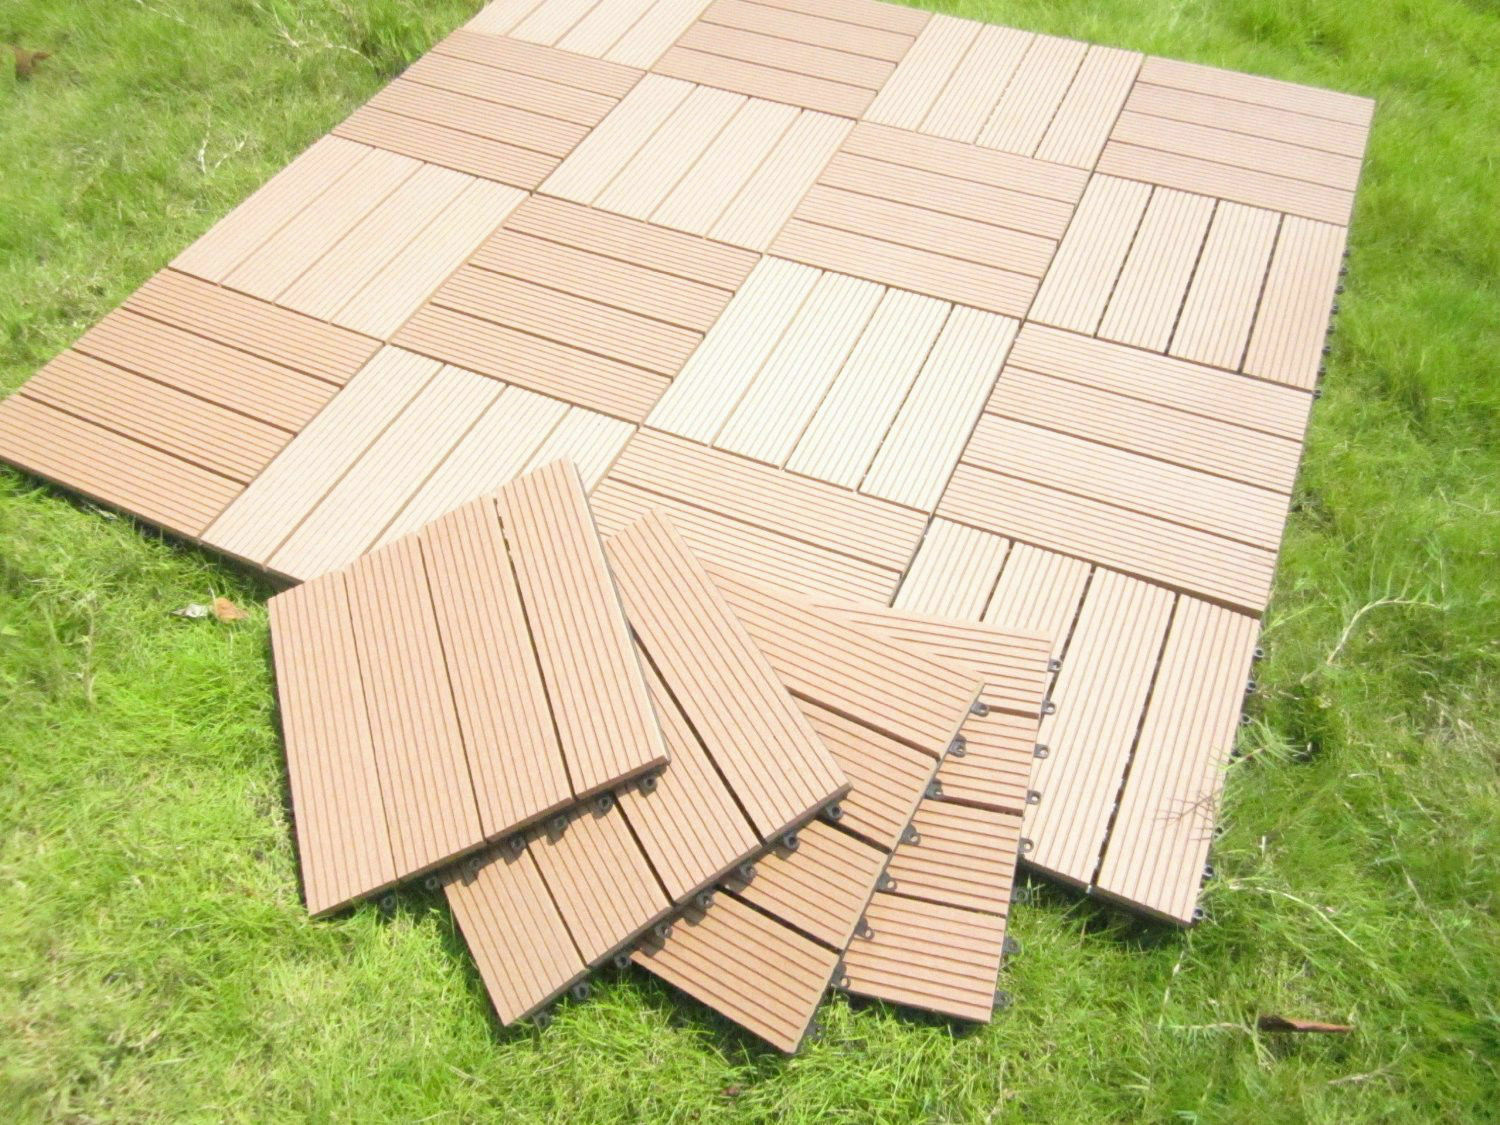 How to install interlocking deck tiles ebay how to install interlocking deck tiles baanklon Image collections